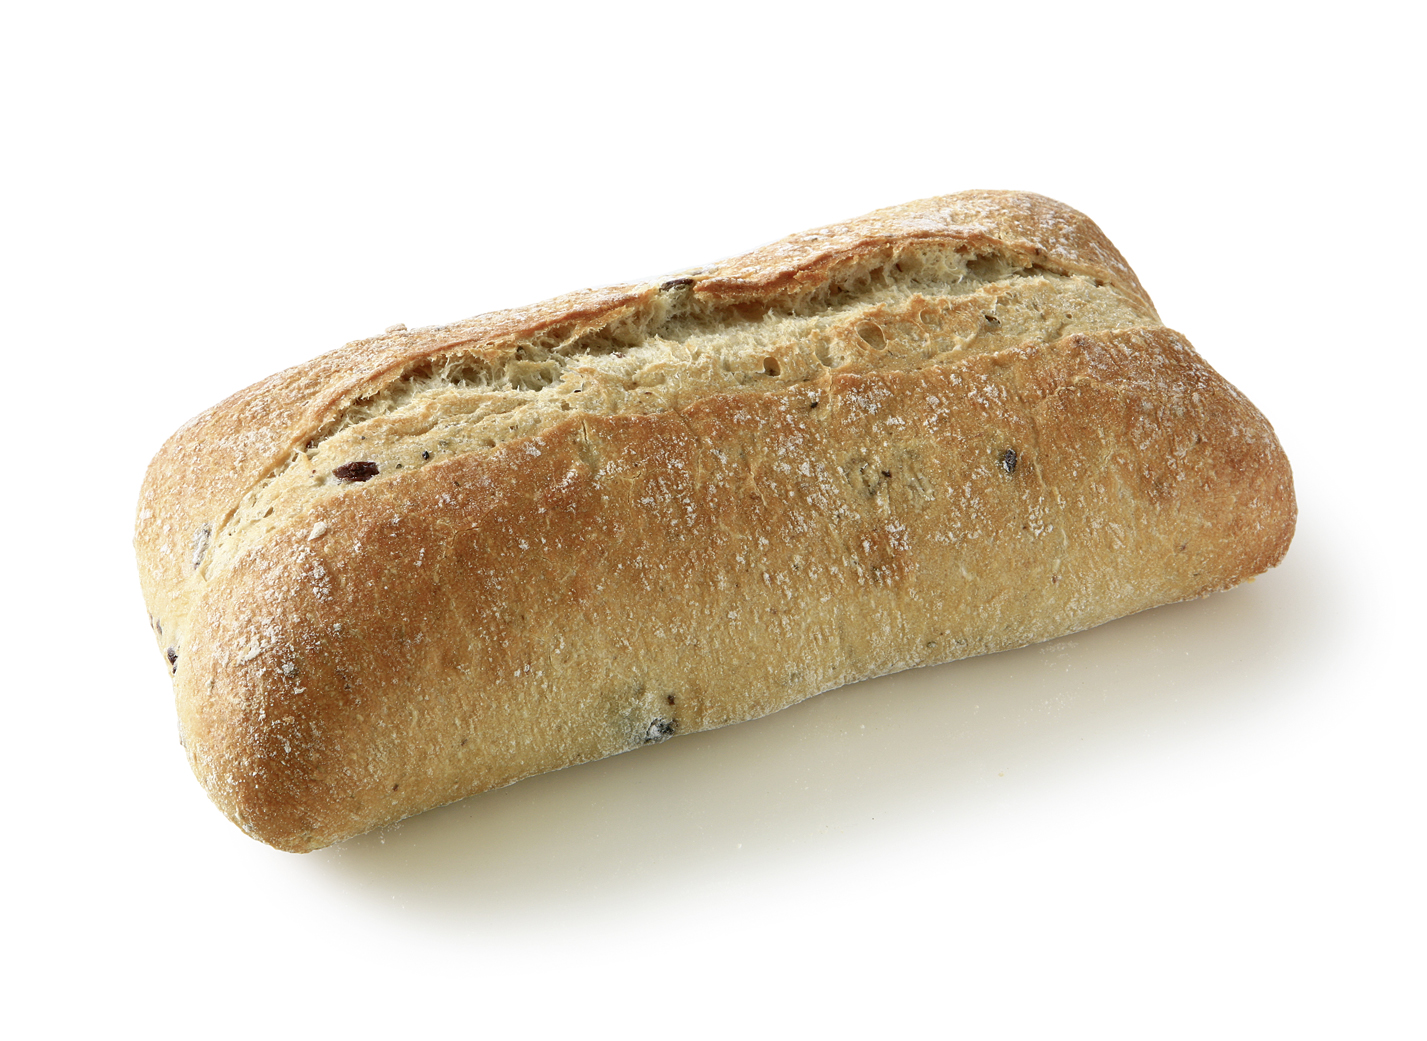 Ciabatta with Olives - Wheat bread with 8.5% black olives measure: approx. 25 x 10 cm